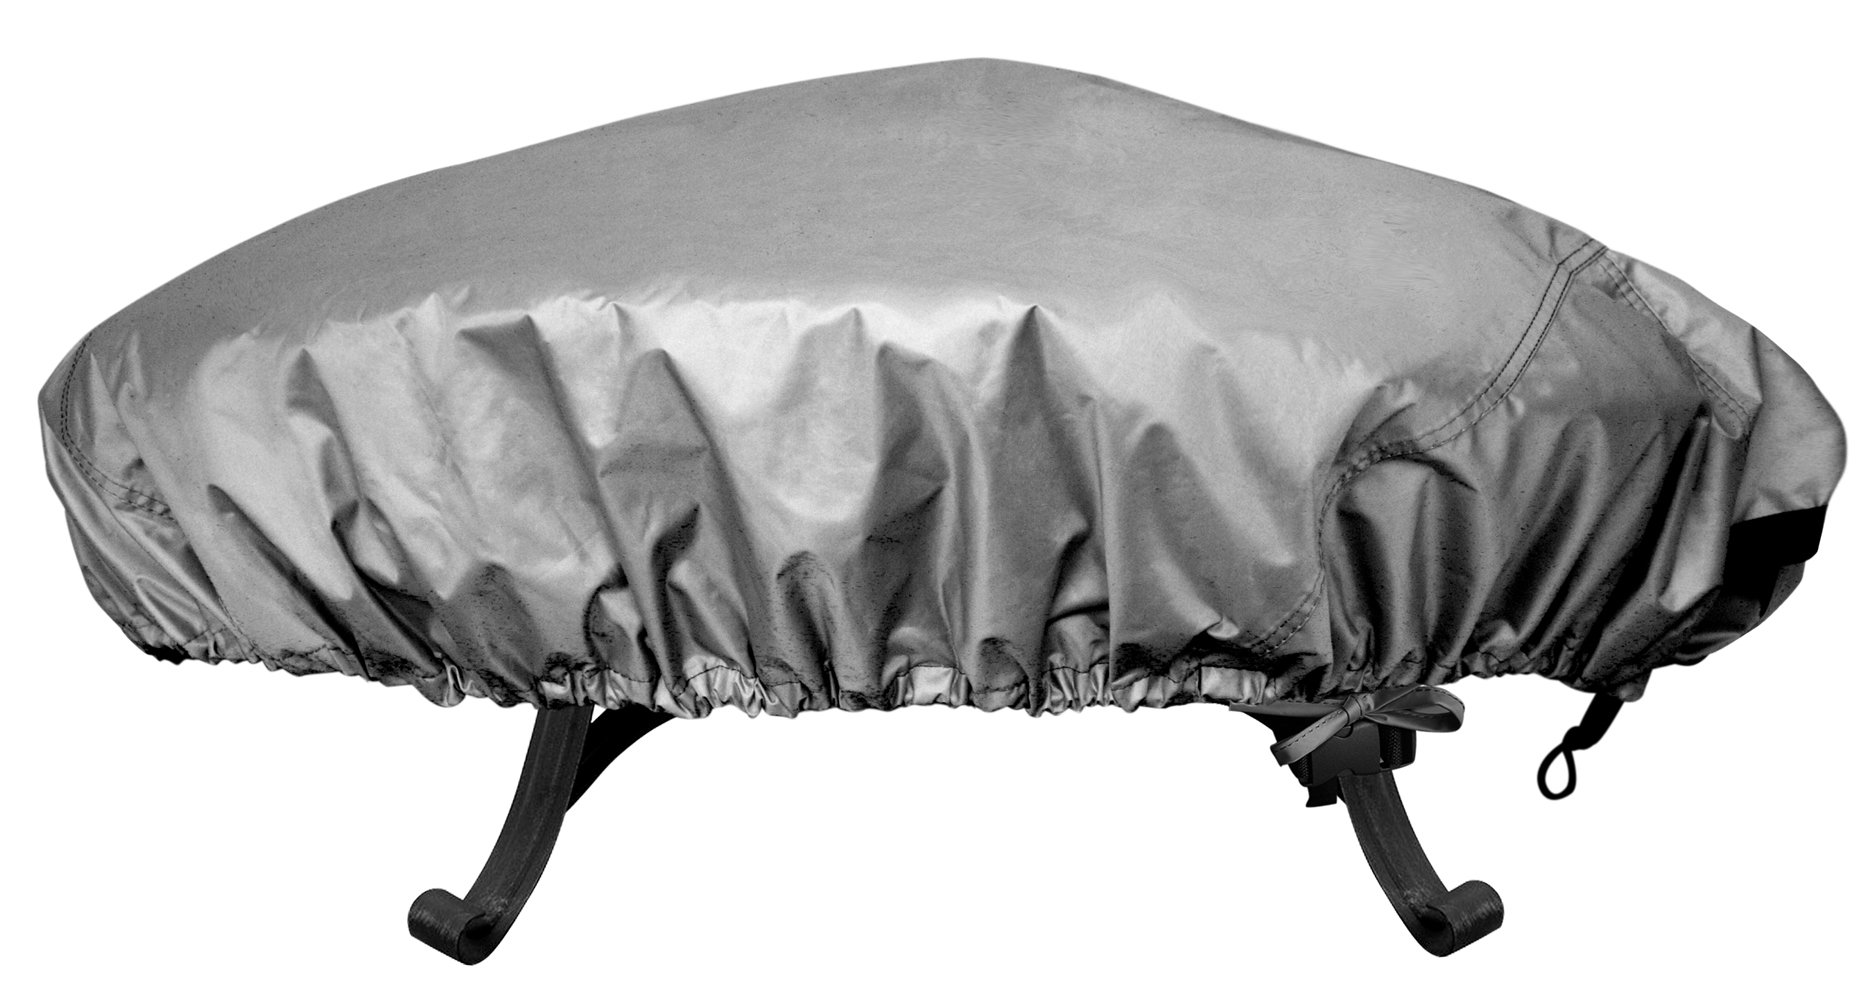 Leader Accessories 100% Waterproof Heavy Duty Outdoor Patio Round Fire Pit Cover 44'' Diameter